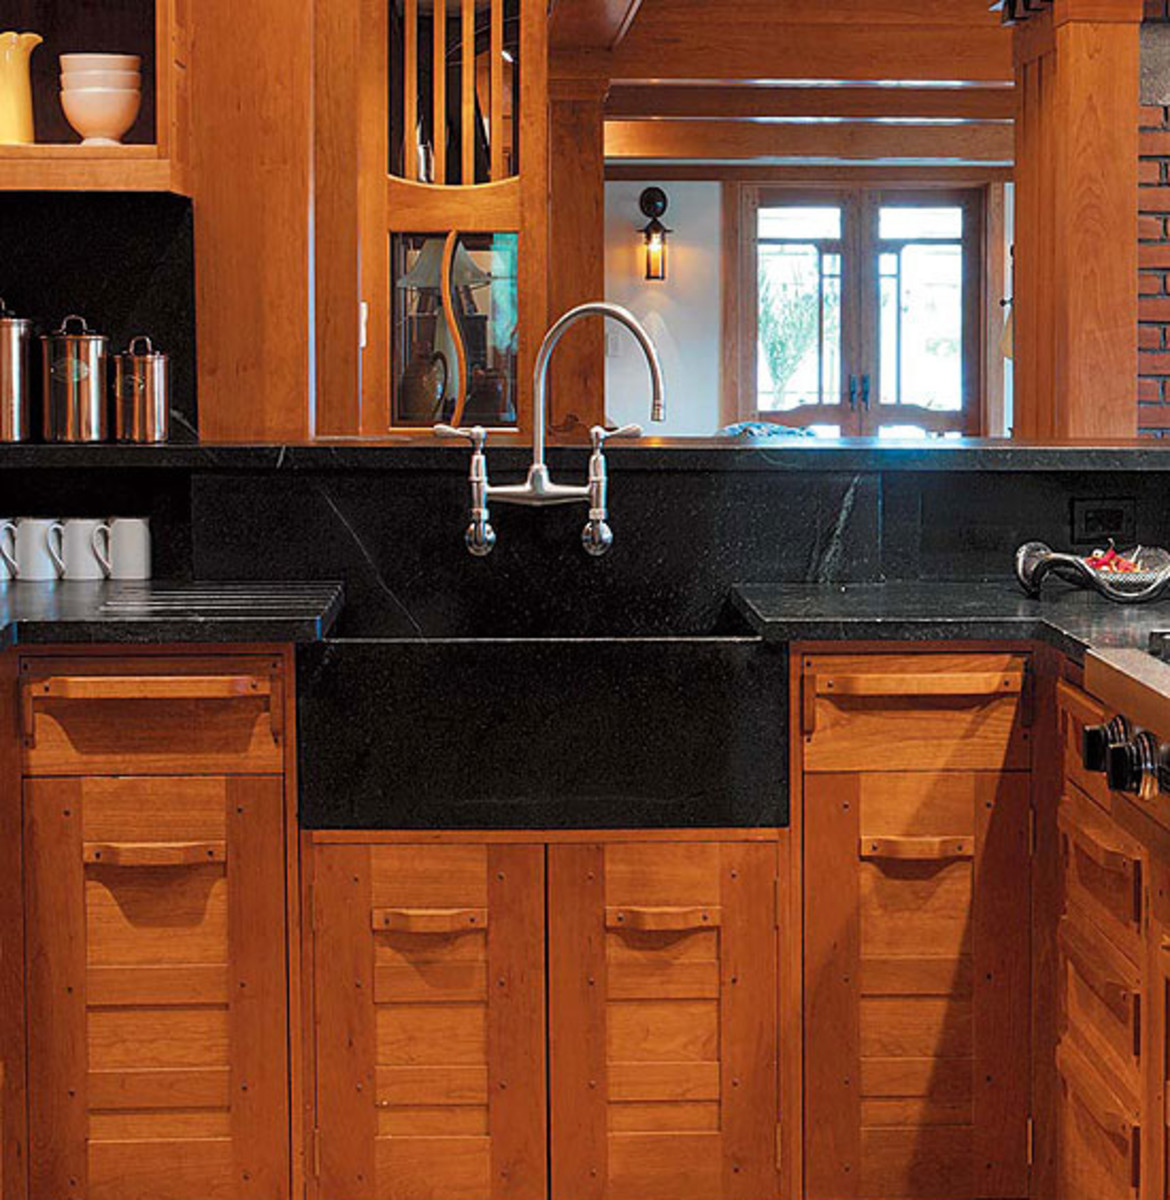 Kitchen Sinks With Granite Countertops Kitchen Sinks Countertops Go Trendy Or Timeless Arts